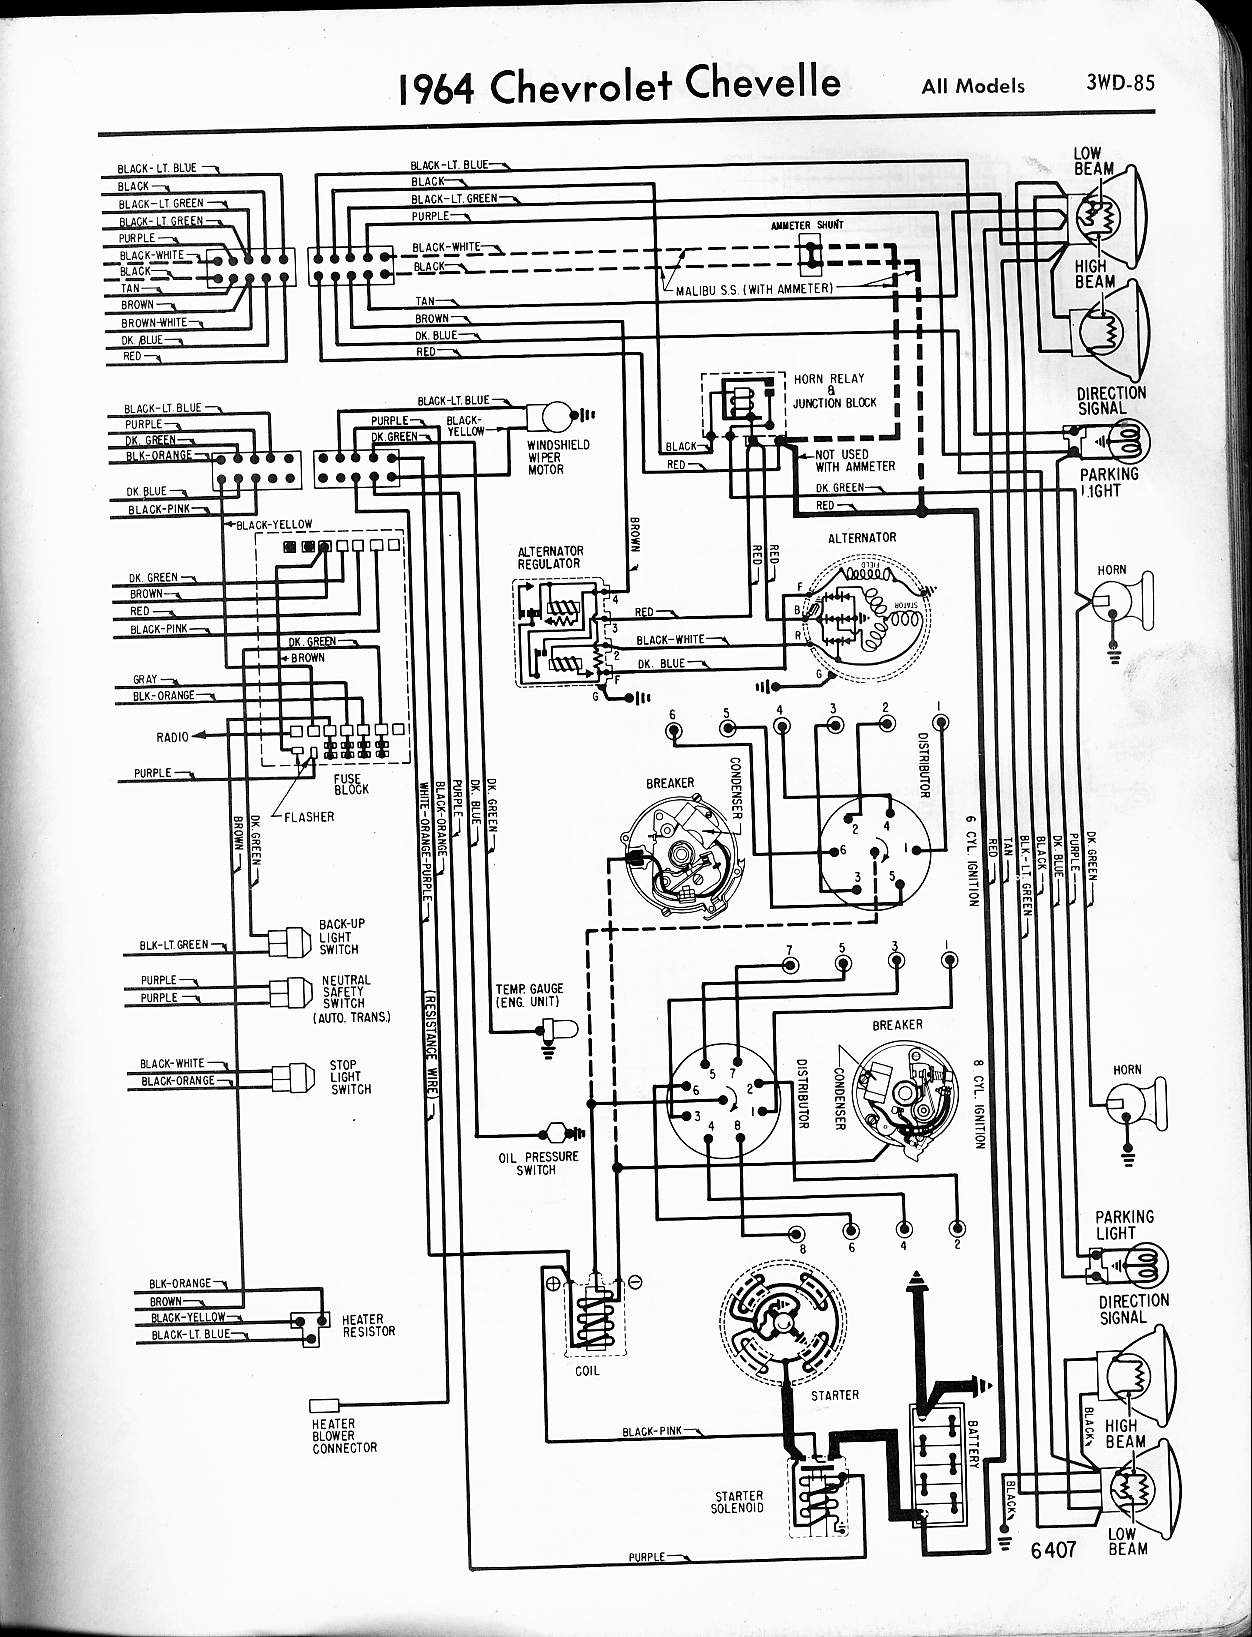 Chevy Diagrams 1989 Mustang Alternator Wiring Diagram 1964 Chevelle Figure A B